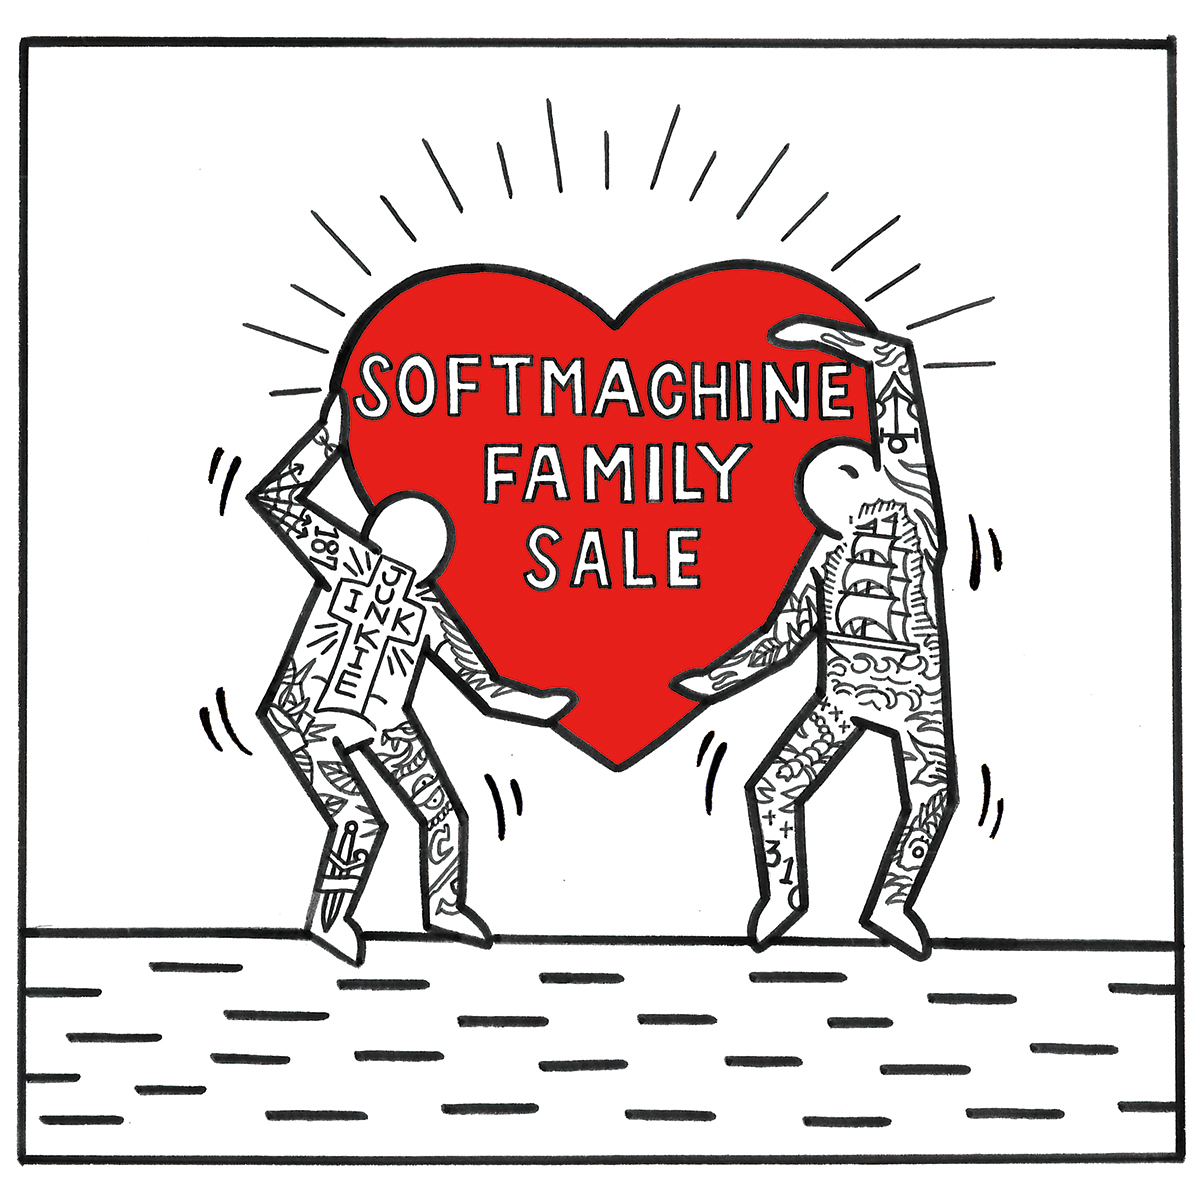 SOFTMACHINE FAMILY SALE BANNER